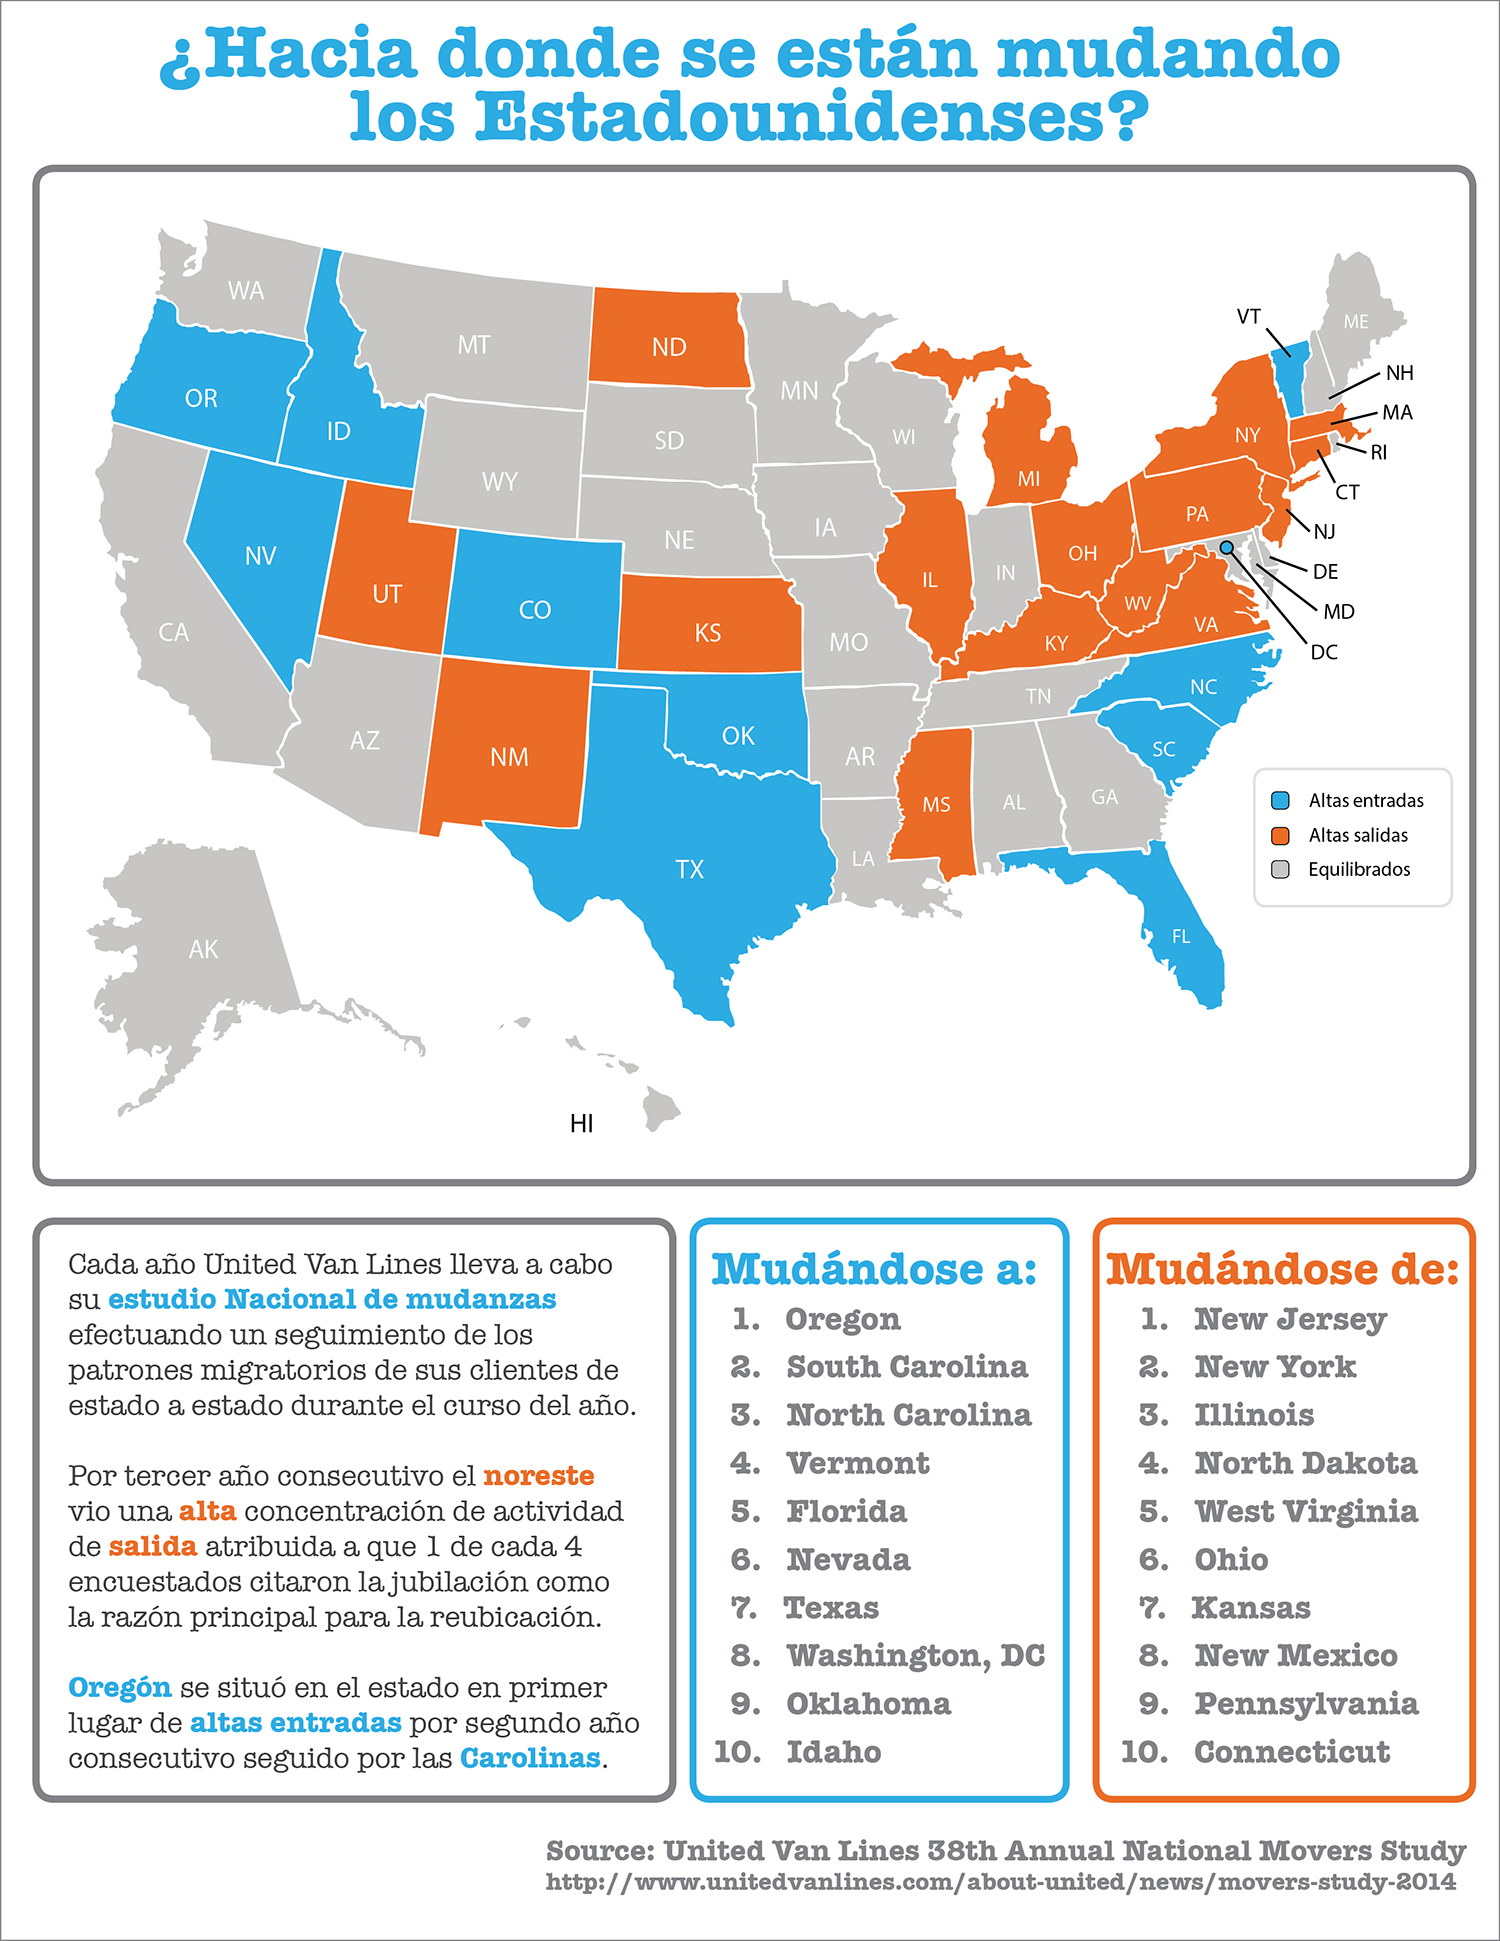 Moving Across America [INFOGRAPHIC]   Simplifying The Market